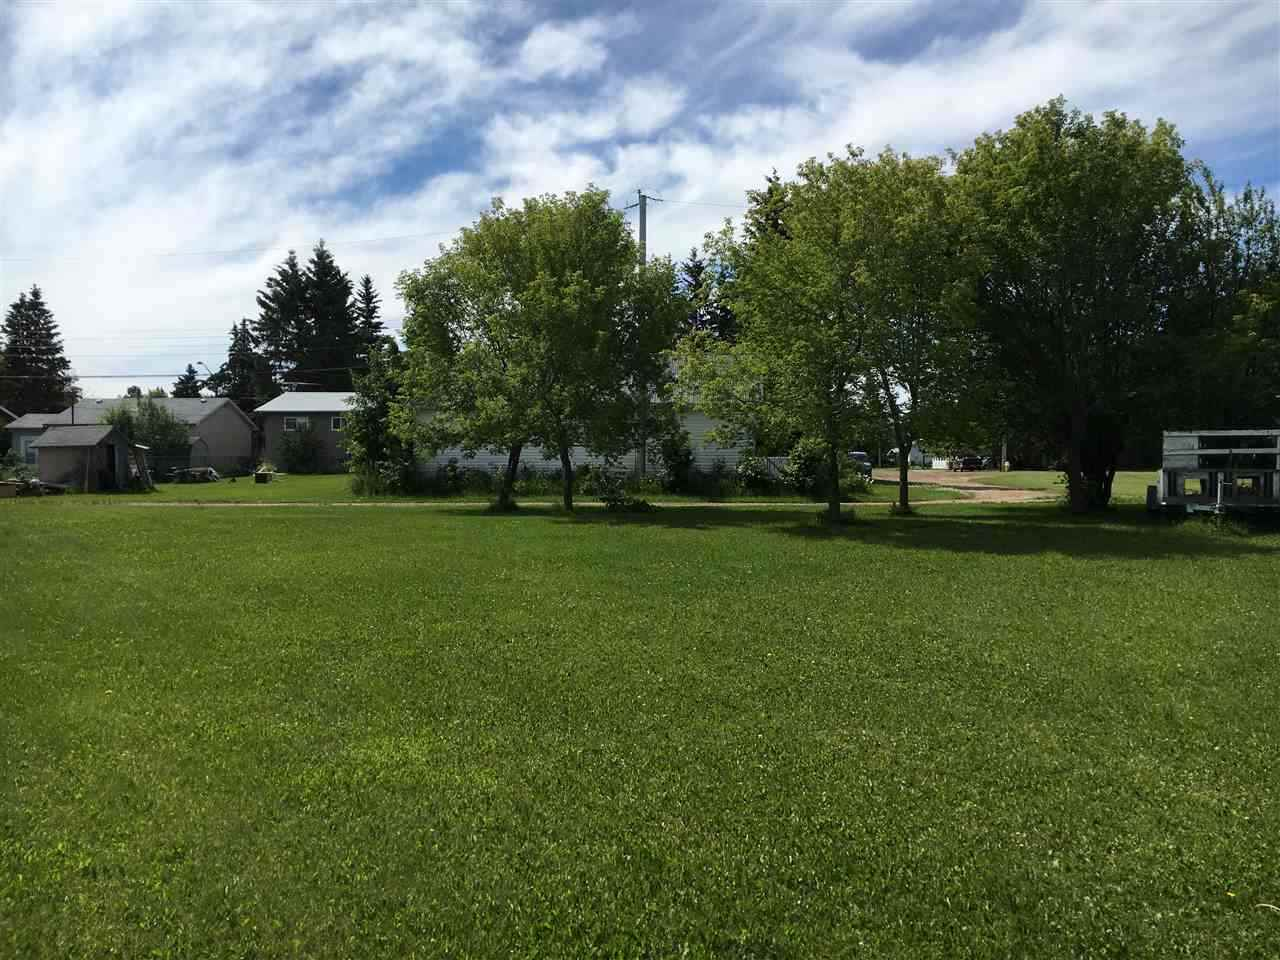 Large pie shaped lot on quiet cul-de-sac in great neighborhood close to school. Back lane access. Easy commute centrally located half hour from Leduc and Drayton Valley.